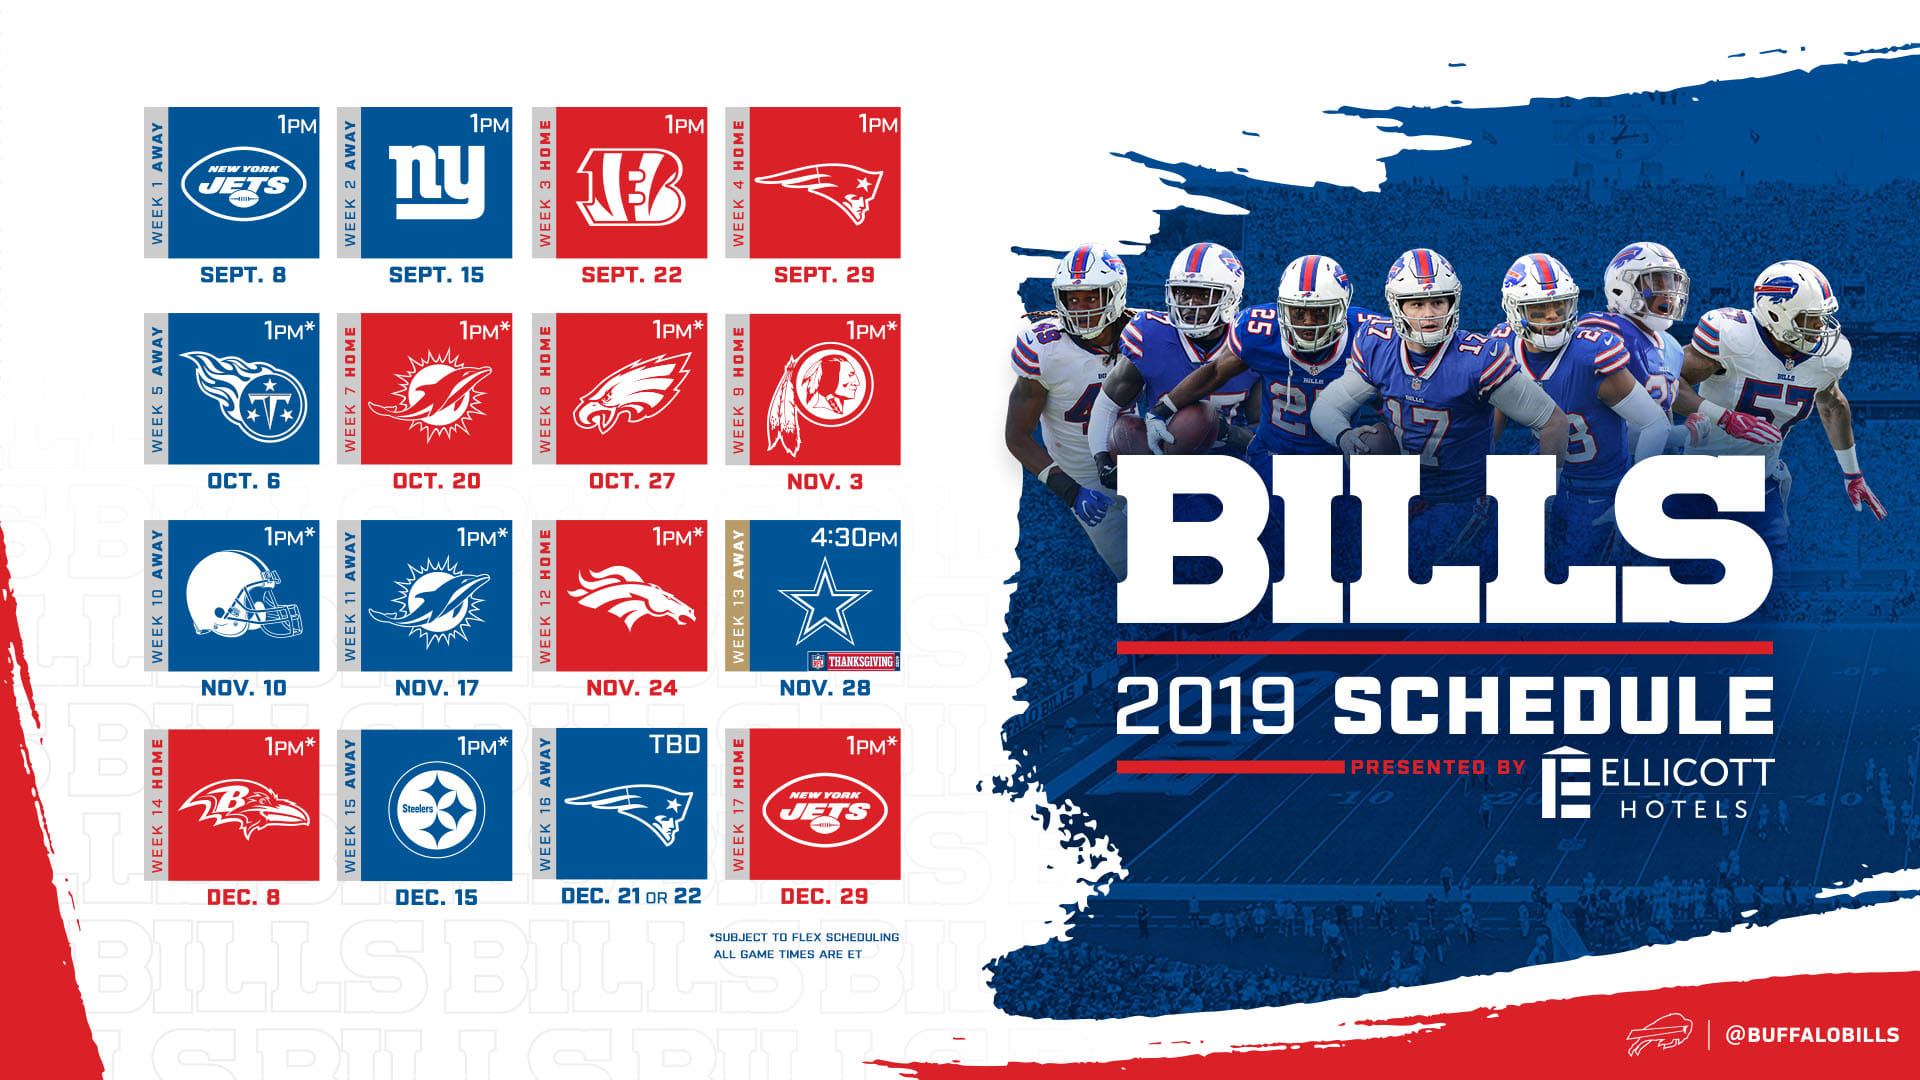 ae9f6c41 Buffalo Bills Wallpapers | Buffalo Bills - buffalobills.com